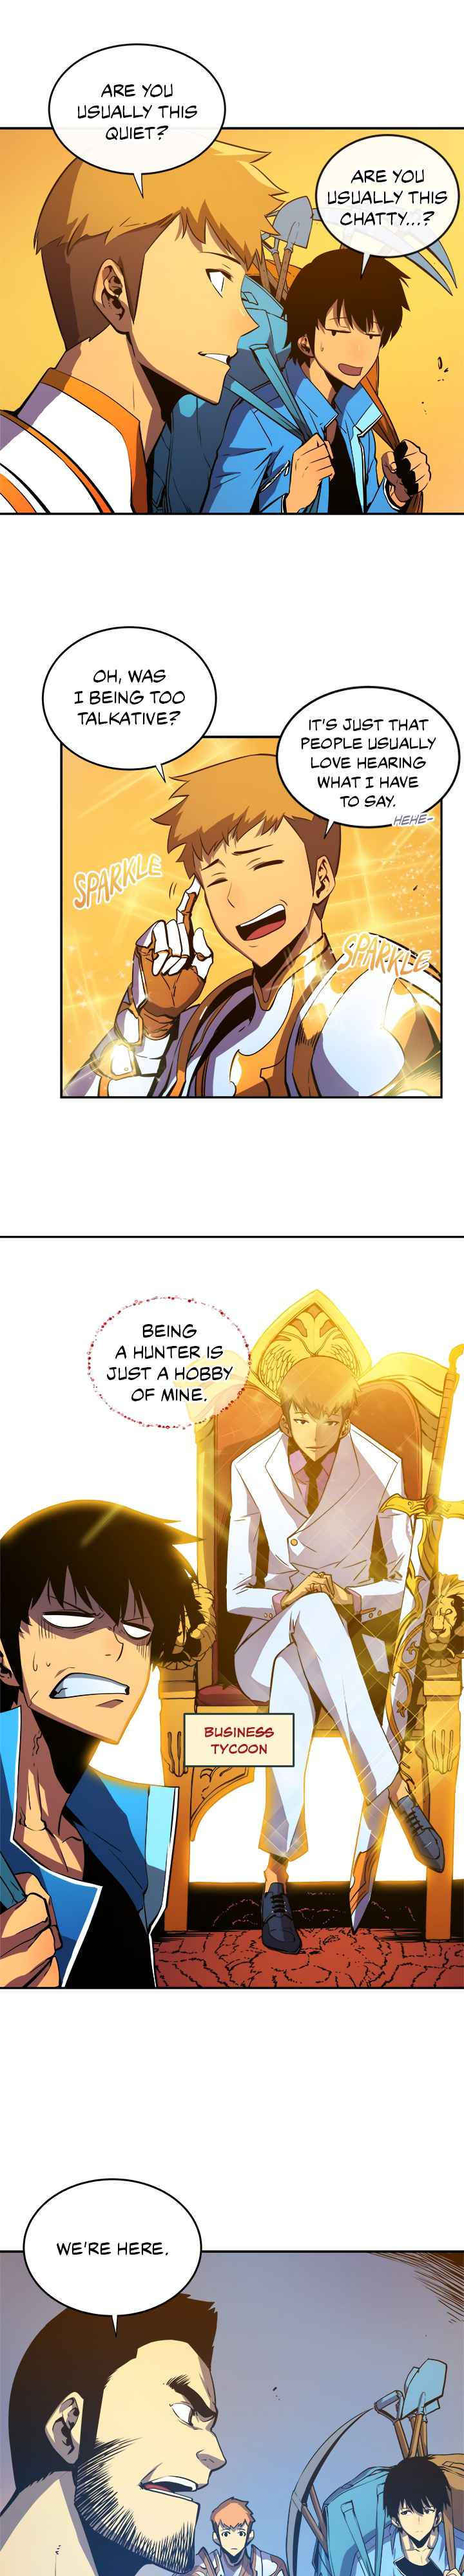 Solo Leveling Chapter 19 Page 5